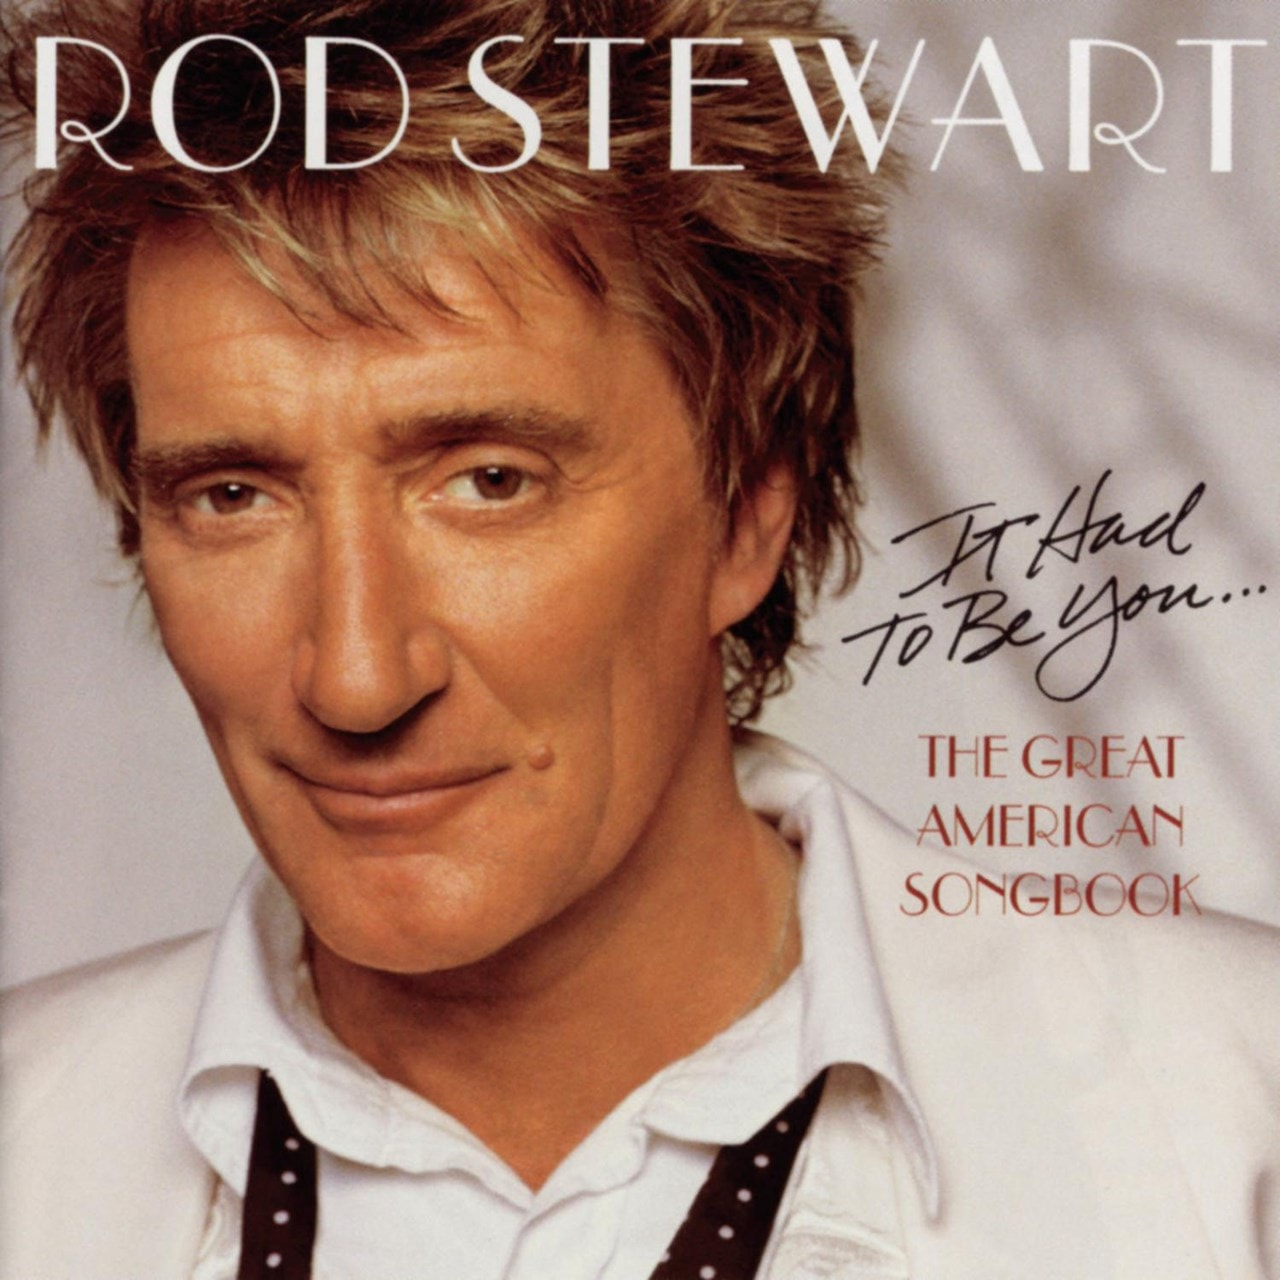 It Had to Be You...the Great American Songbook - 1